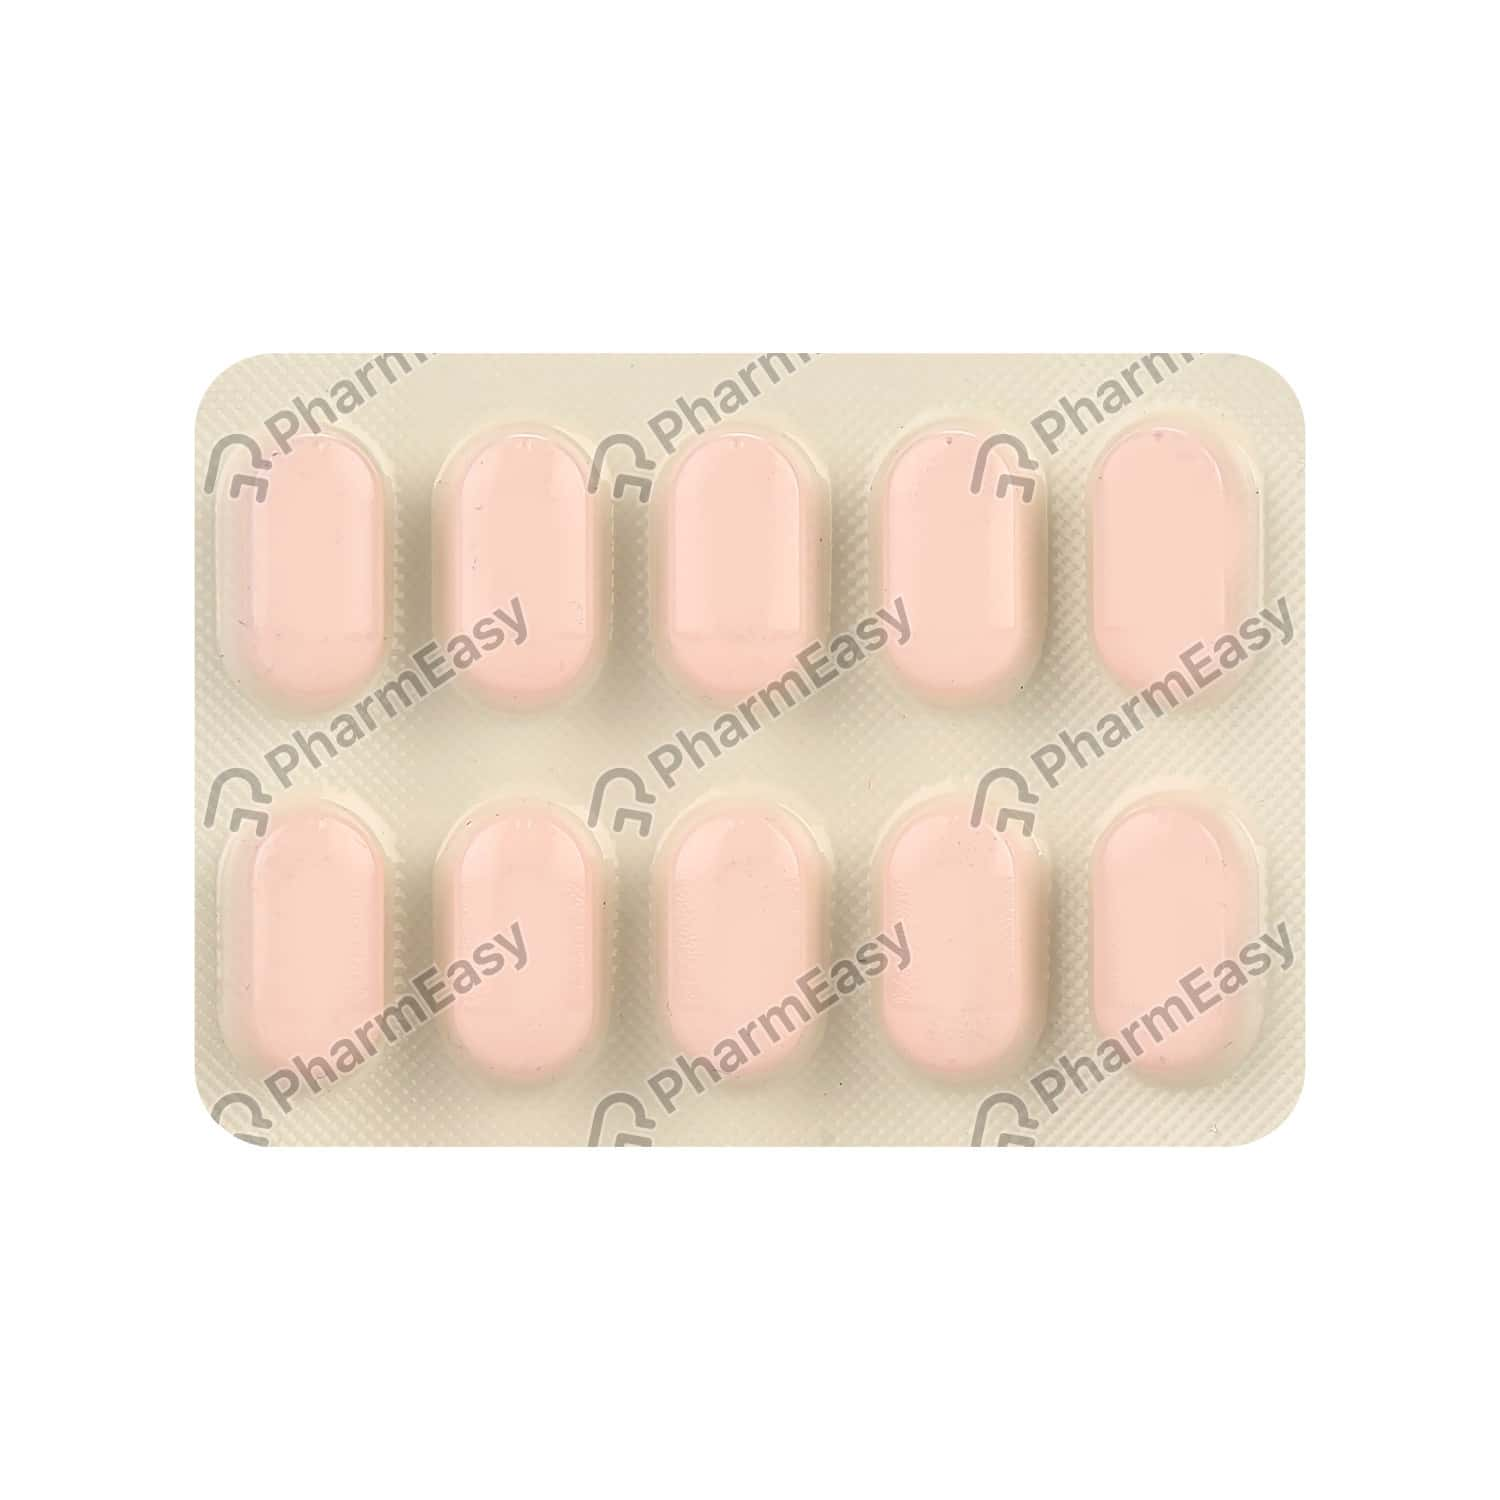 Fexy 180mg Tablet